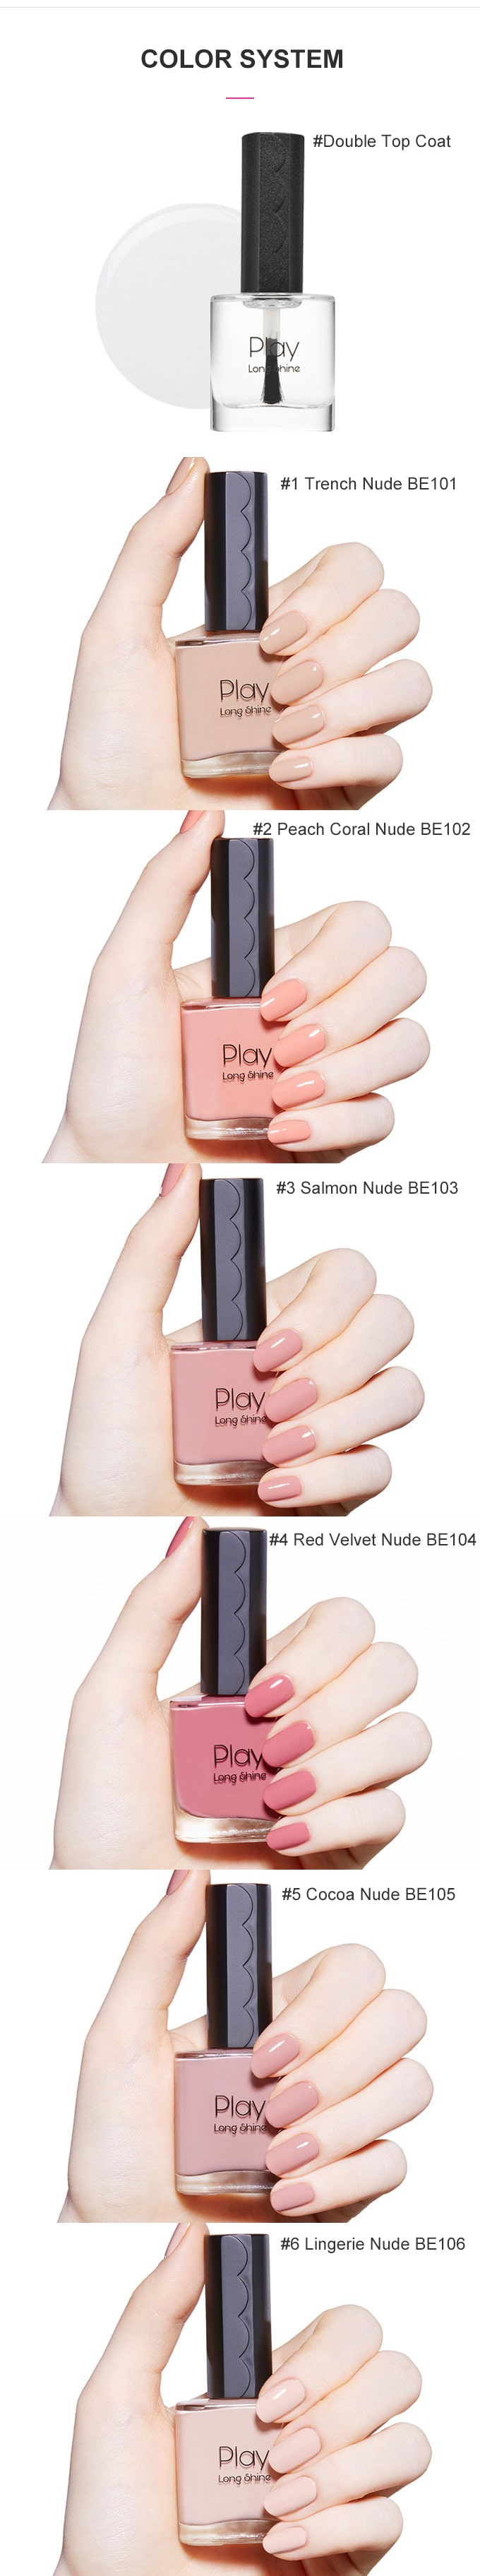 Buy ETUDE HOUSE Play Long Shine Nail [#1 Trench Nude]